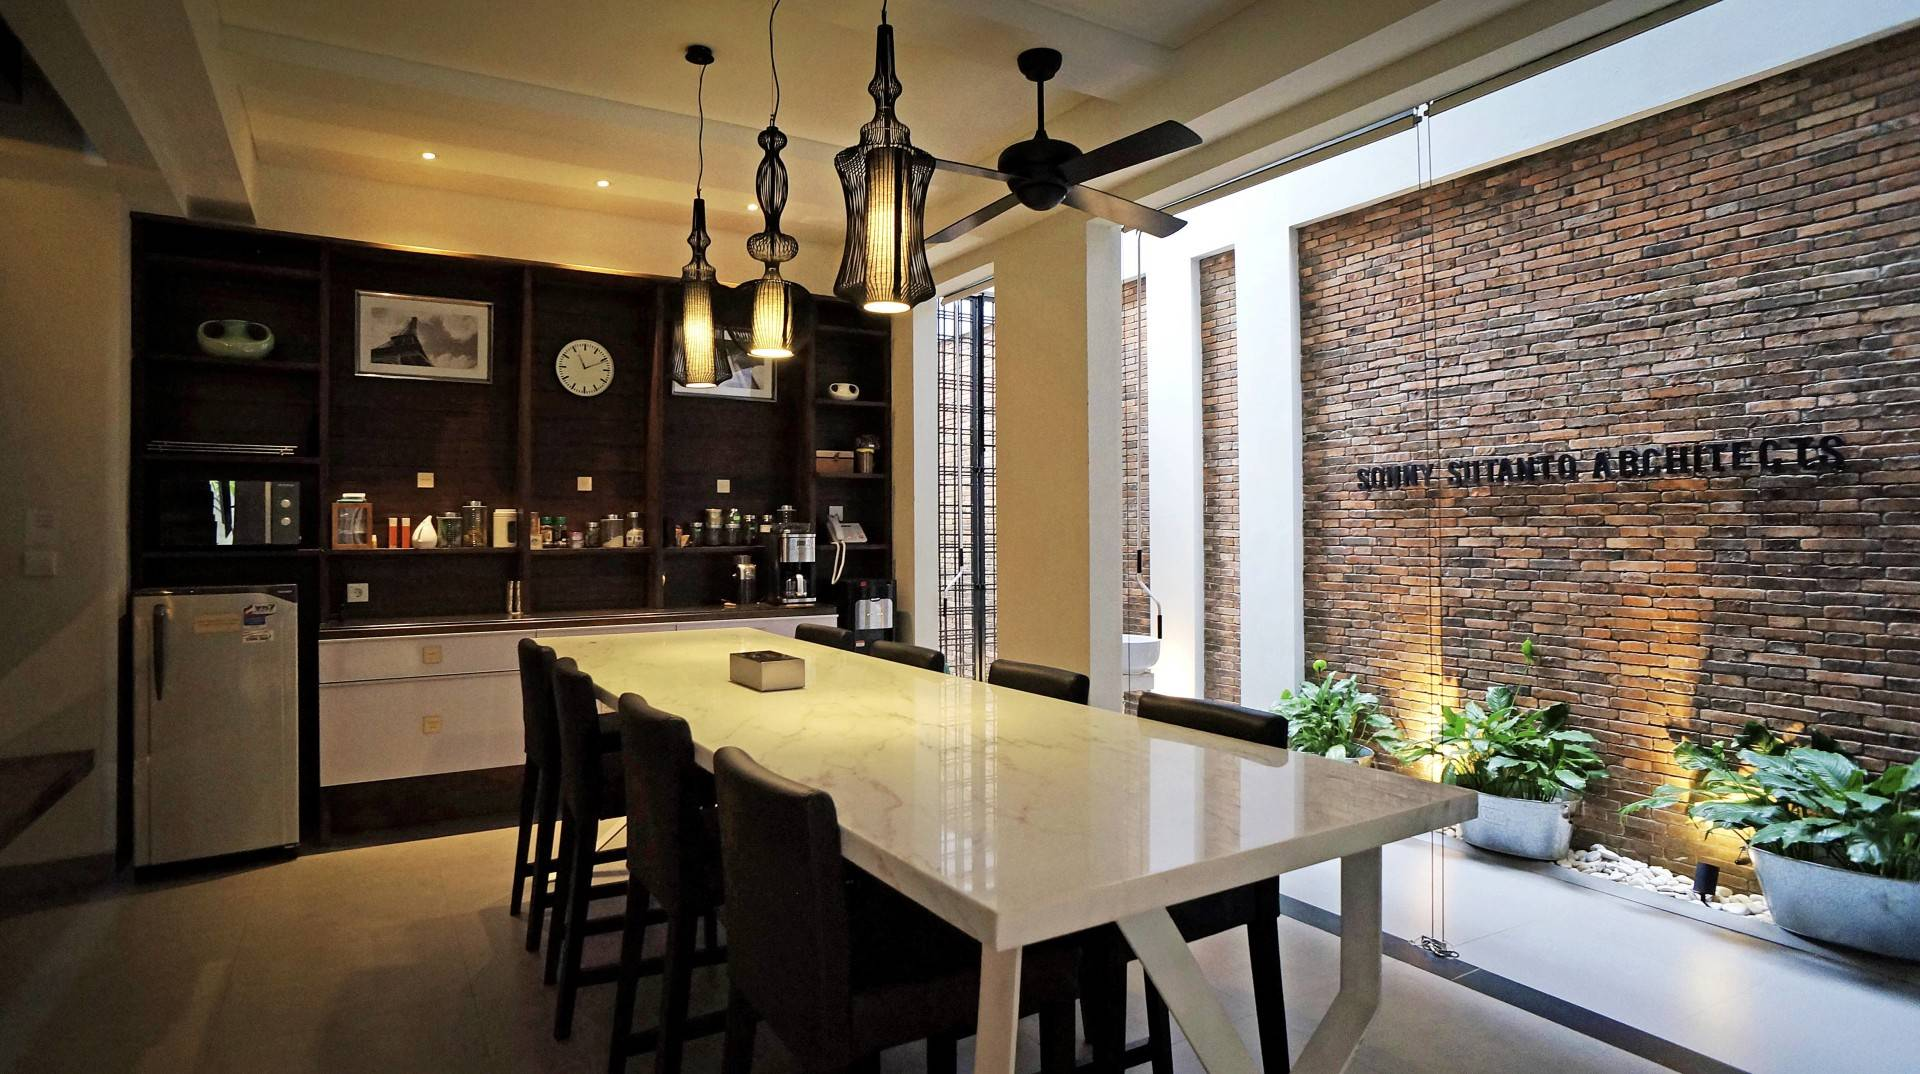 office in dining room. Photo Dining Area Sonny Sutanto Architects New Office 11 Desain Arsitek Oleh In Room E